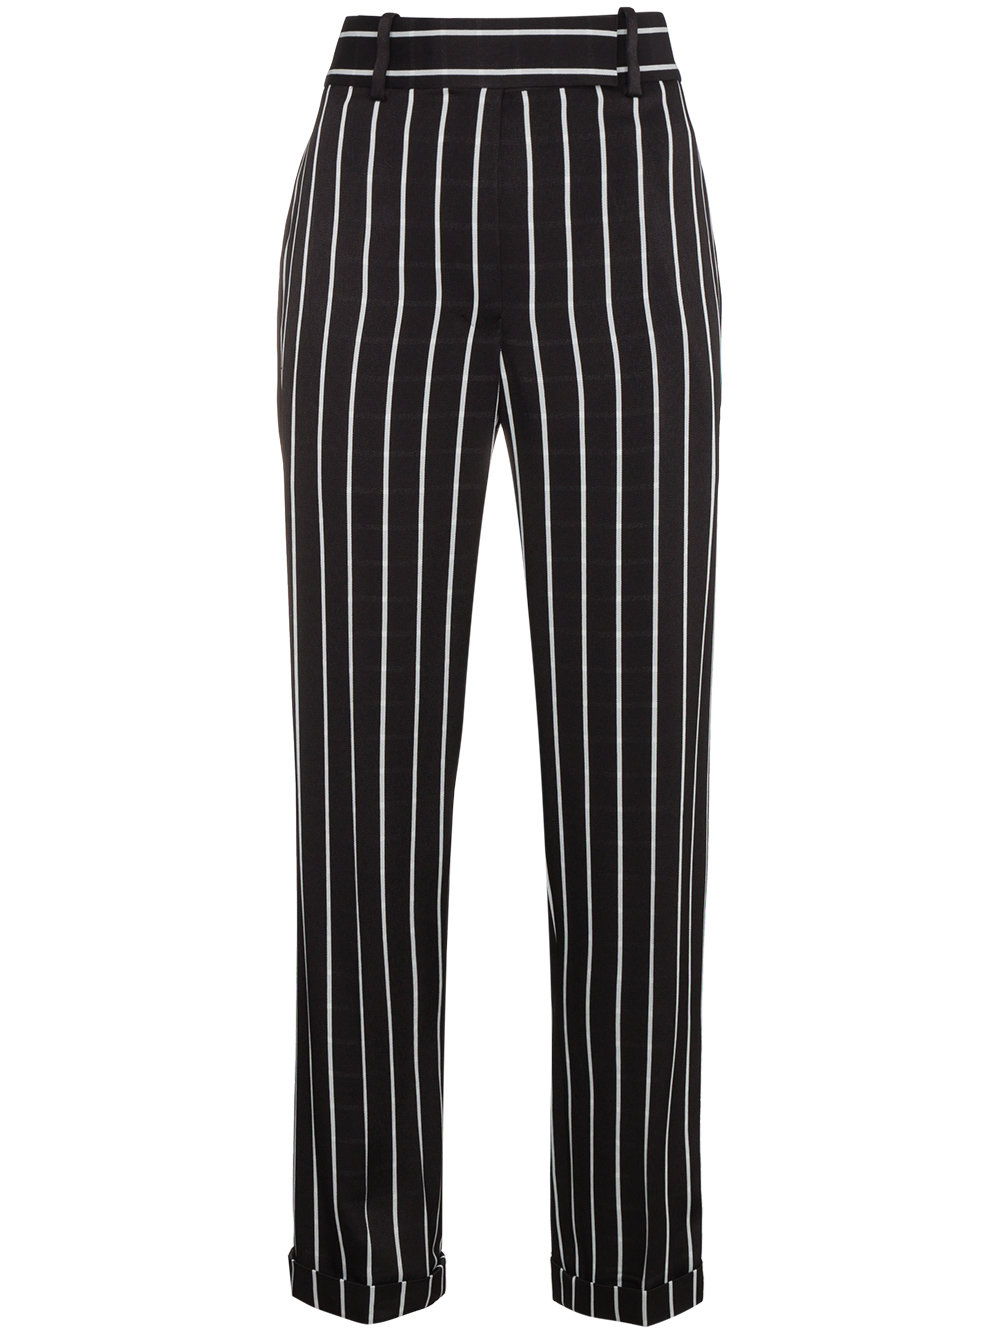 Haider Ackermann   Black and White Striped Trouser